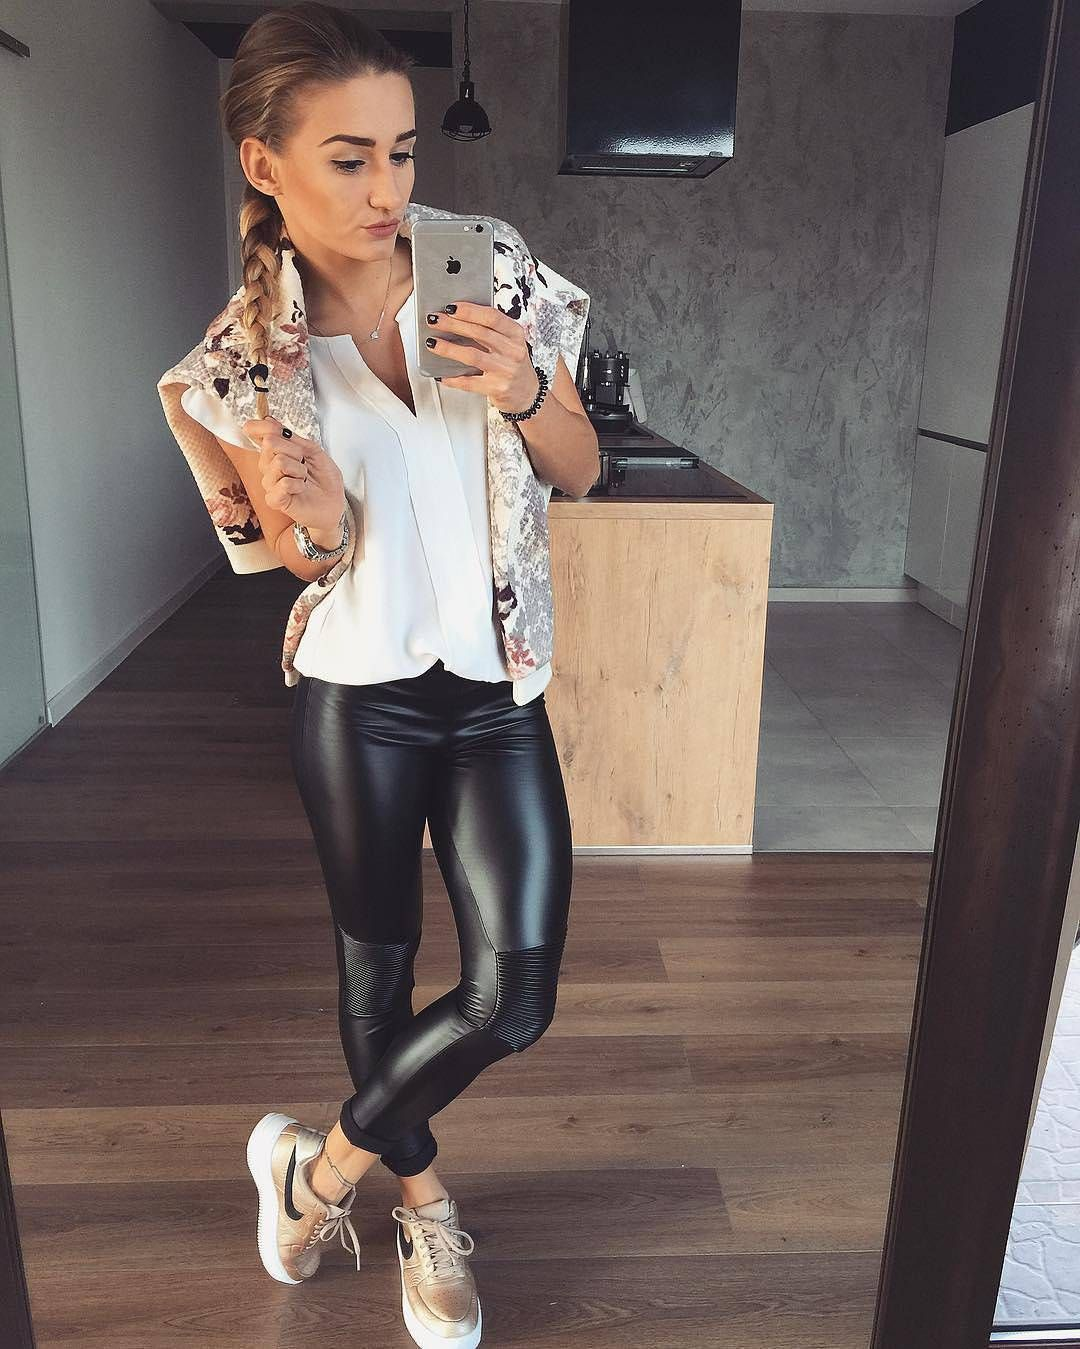 sleek black faux leather leggings worn with white blouse. Black Bedroom Furniture Sets. Home Design Ideas